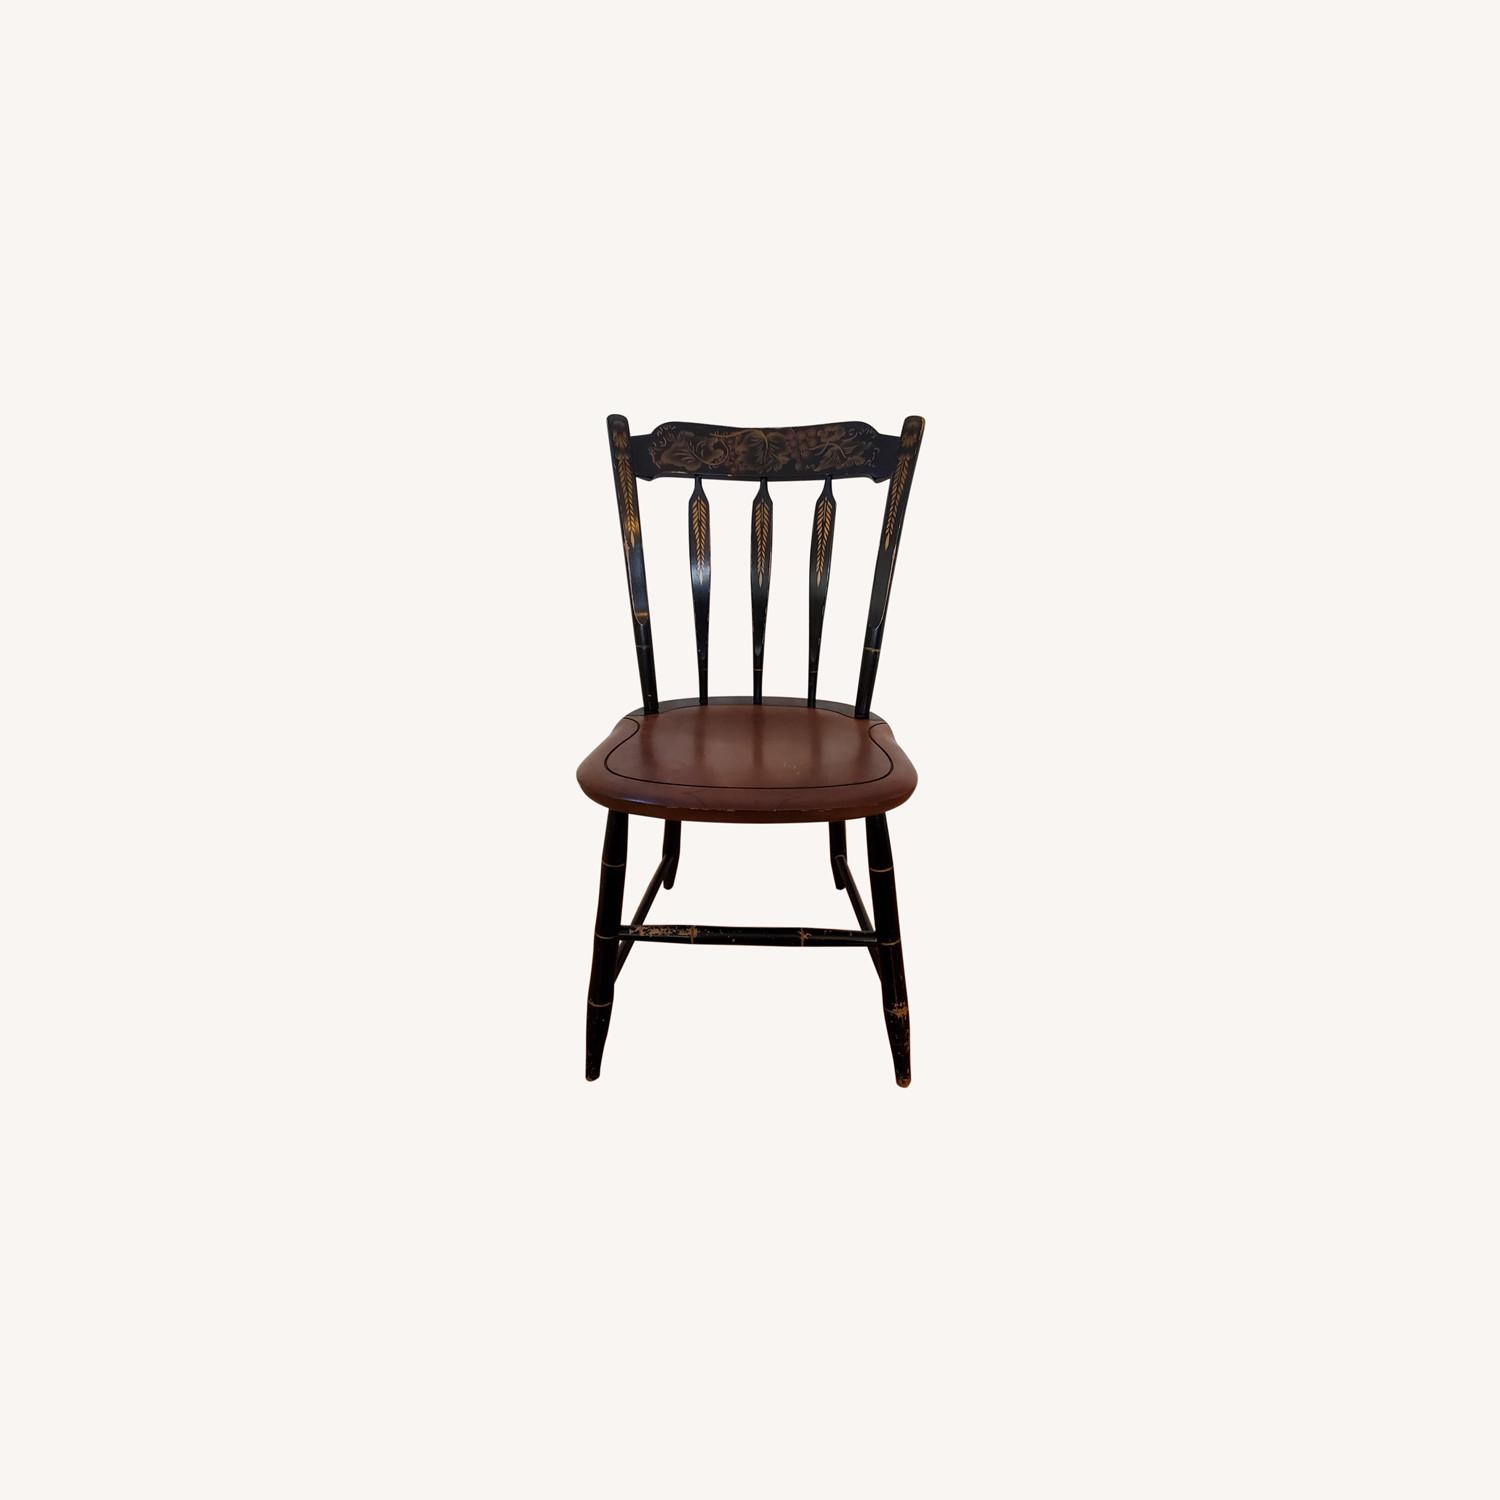 Hitchcock Furniture Signed Black Farmhouse Chair - image-0